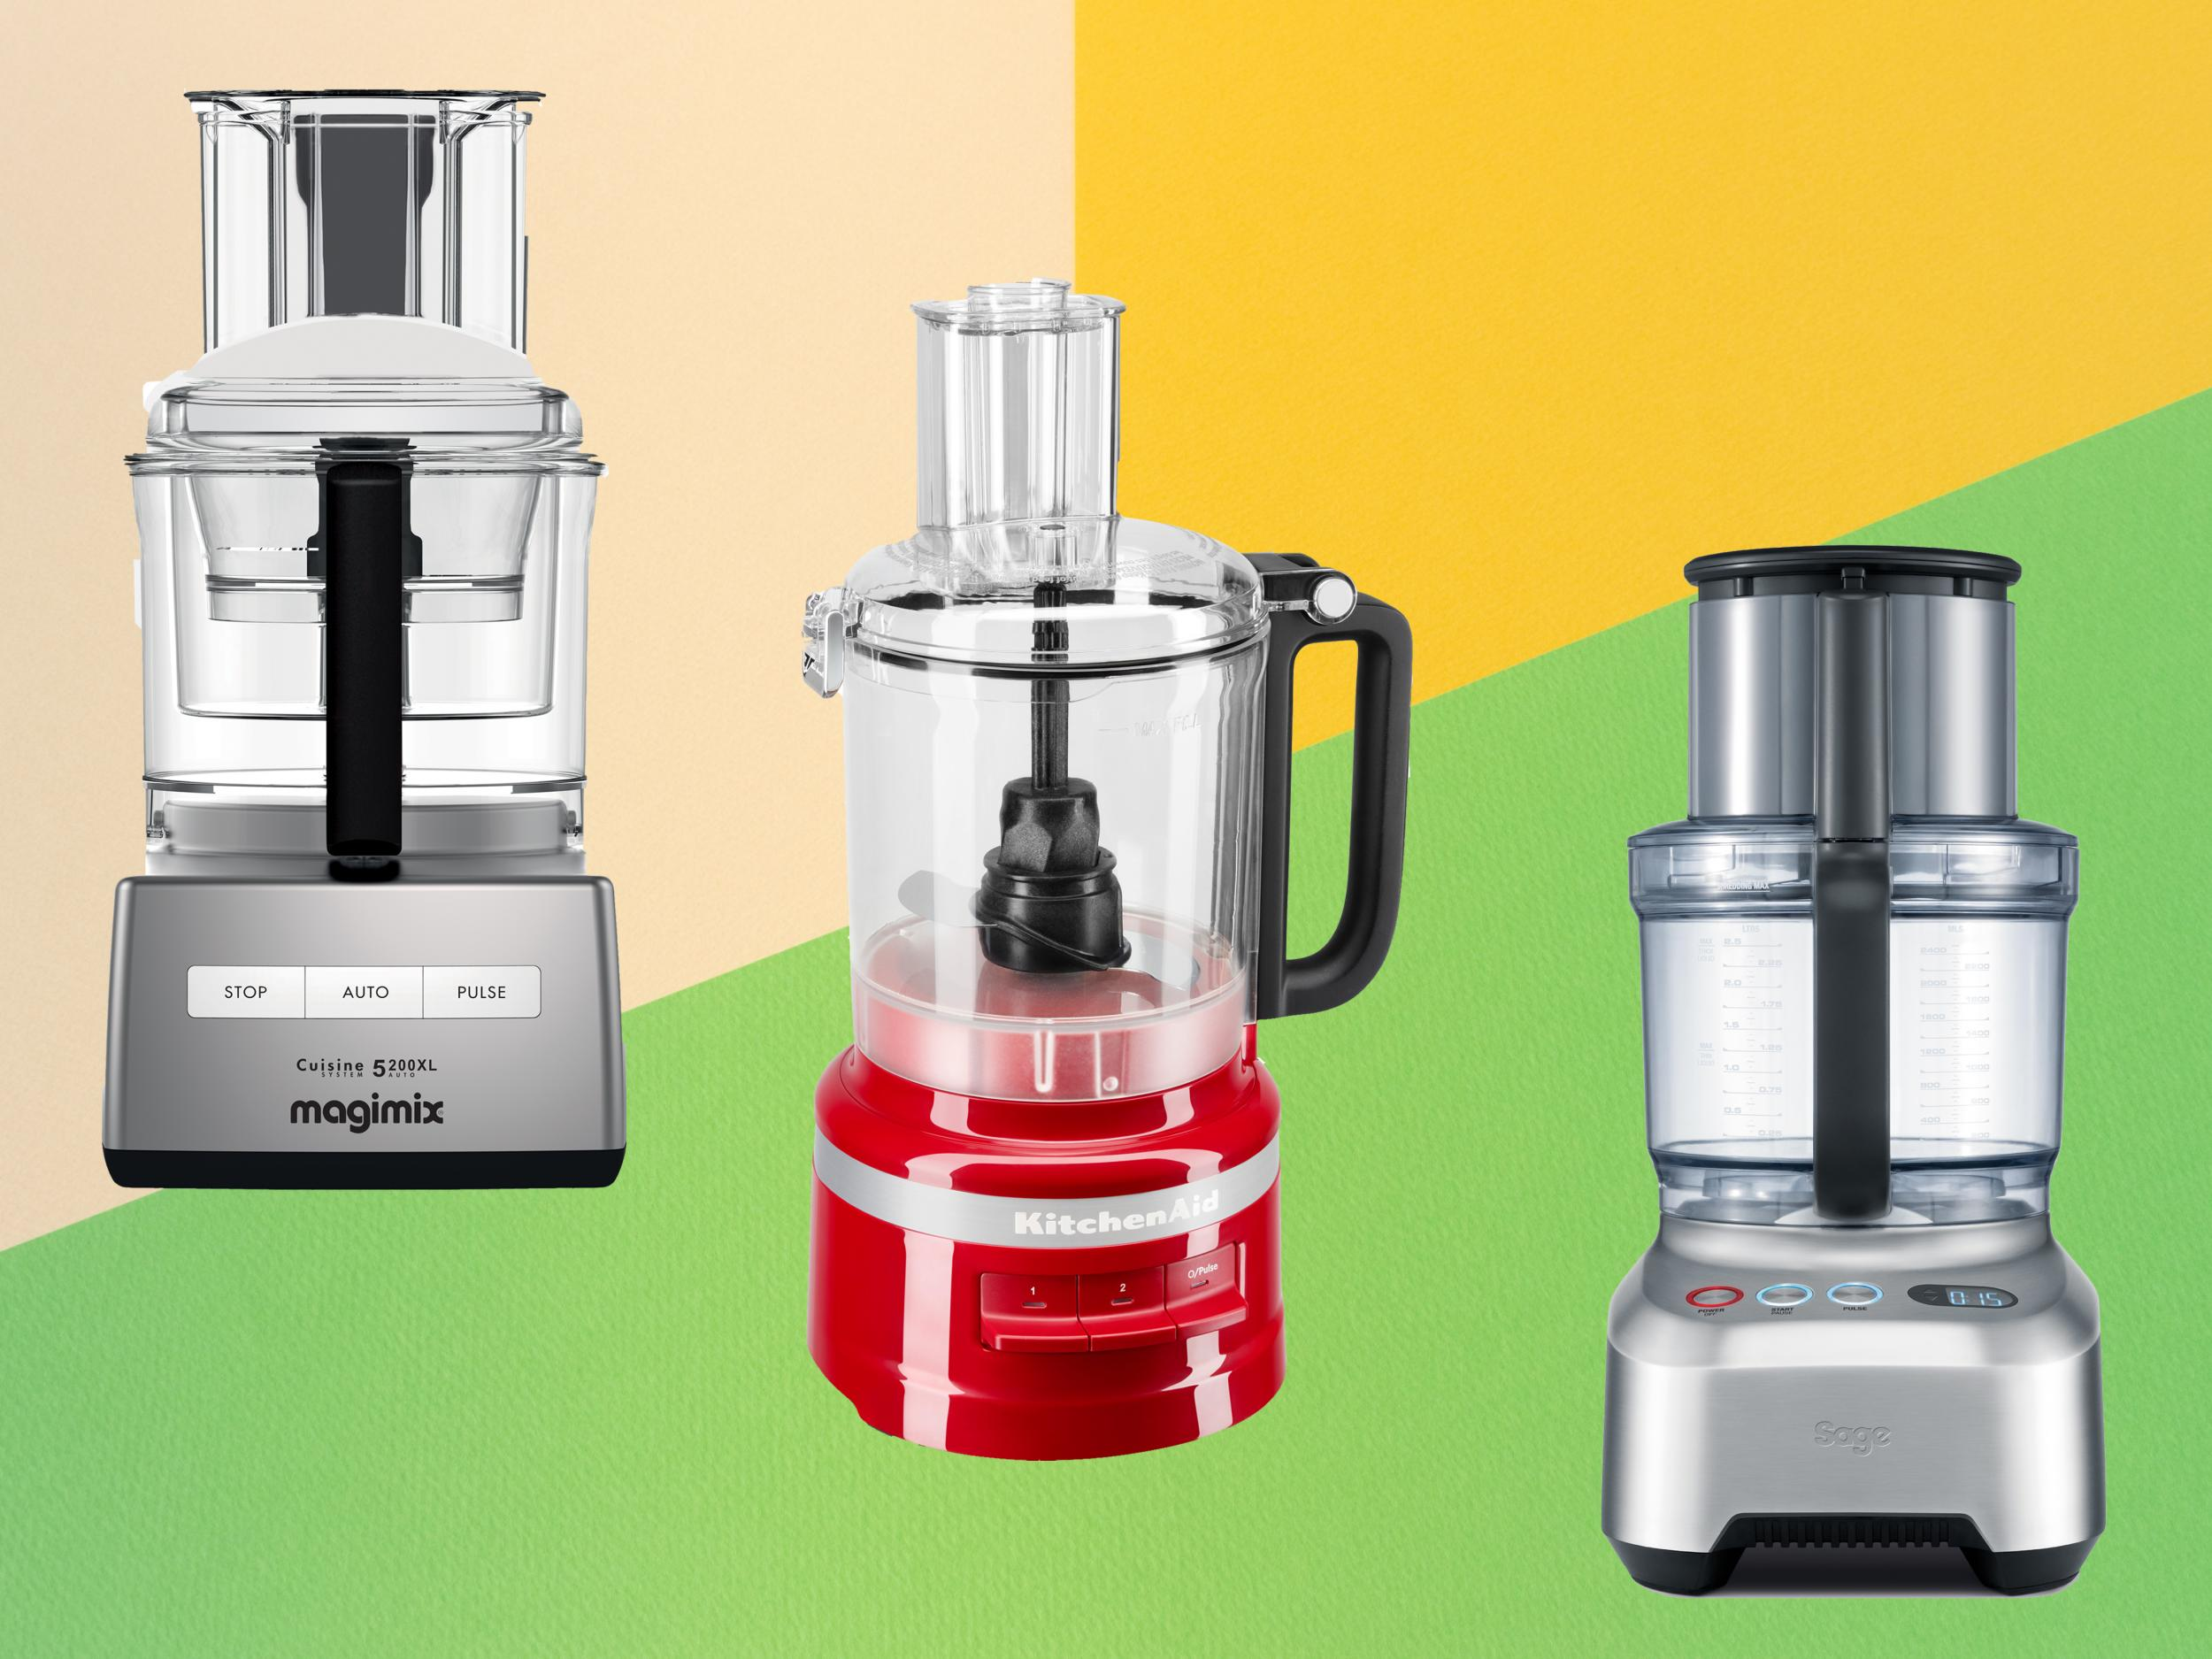 Cheap Food Processor Deals, Vouchers & Online Offers for